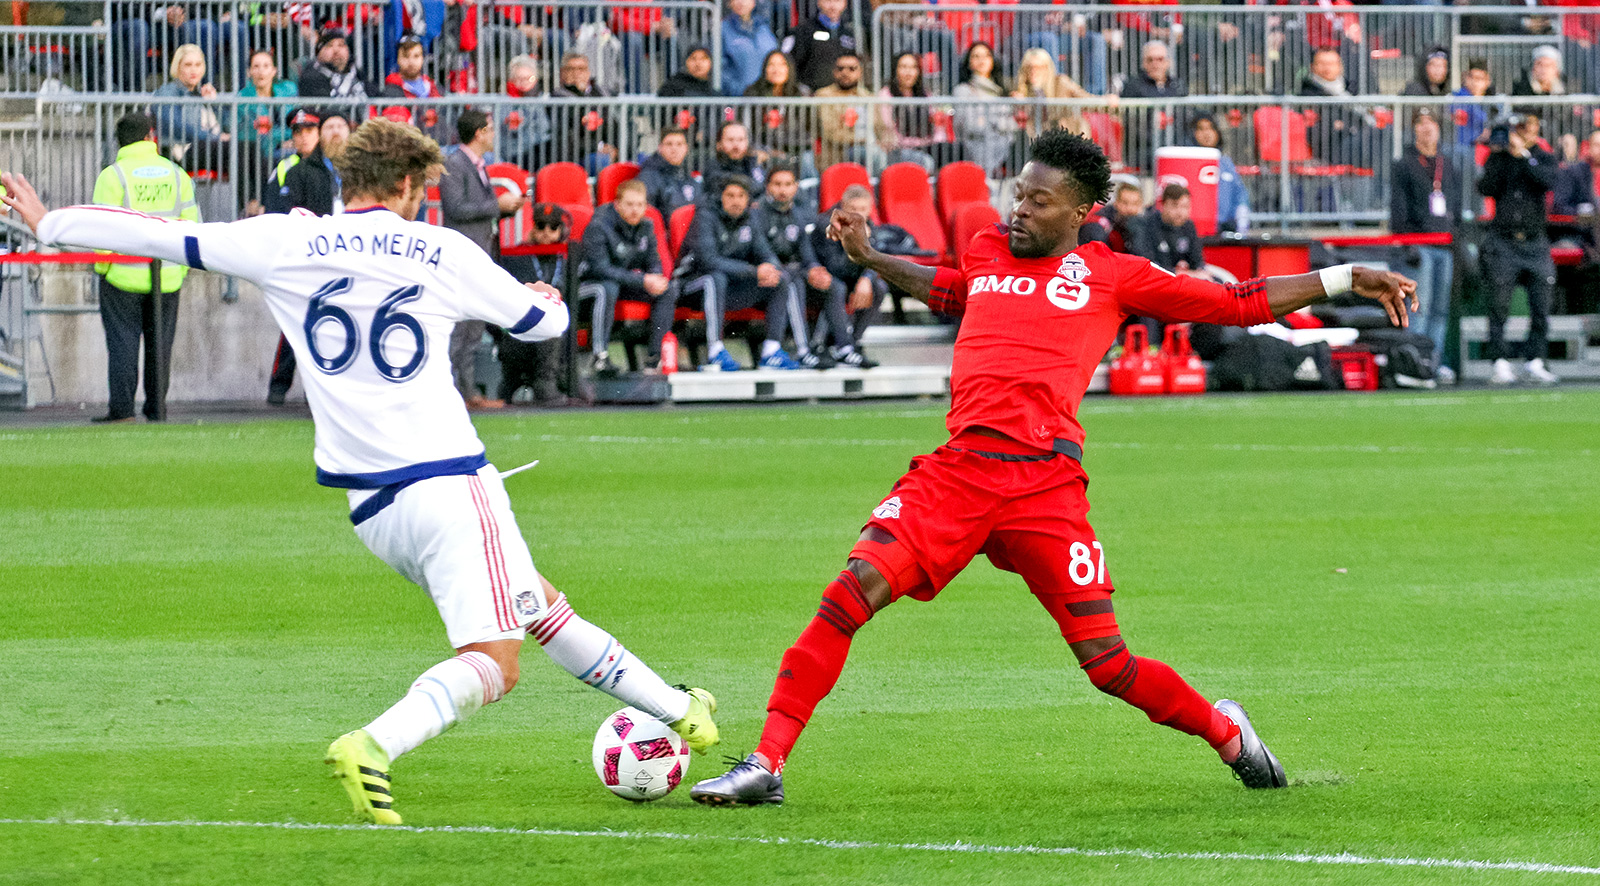 Ricketts and Meira battling for the ball in front of Chicago's goal.